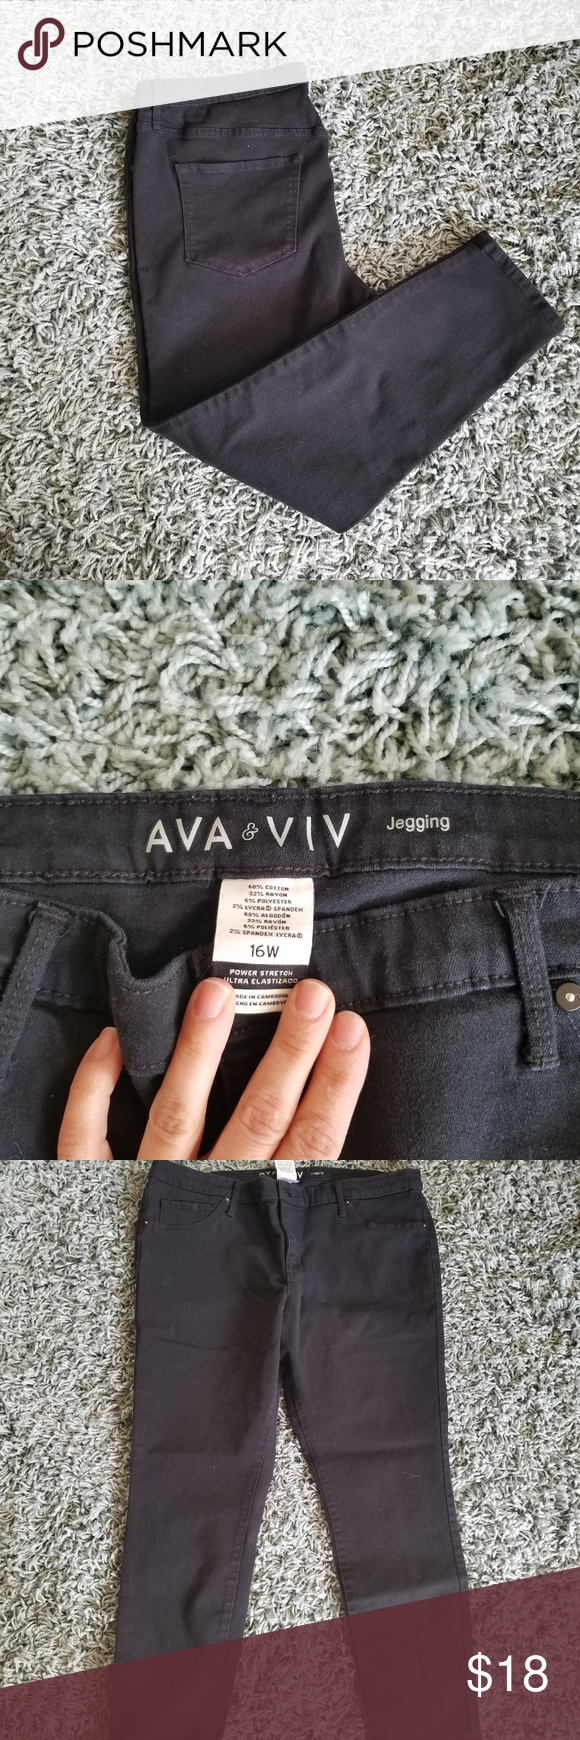 38e4bfa3178 Black Ava   Viv jeggings size 16W Used and in great condition black jeggings  by ava   viv! Size 16W. 26